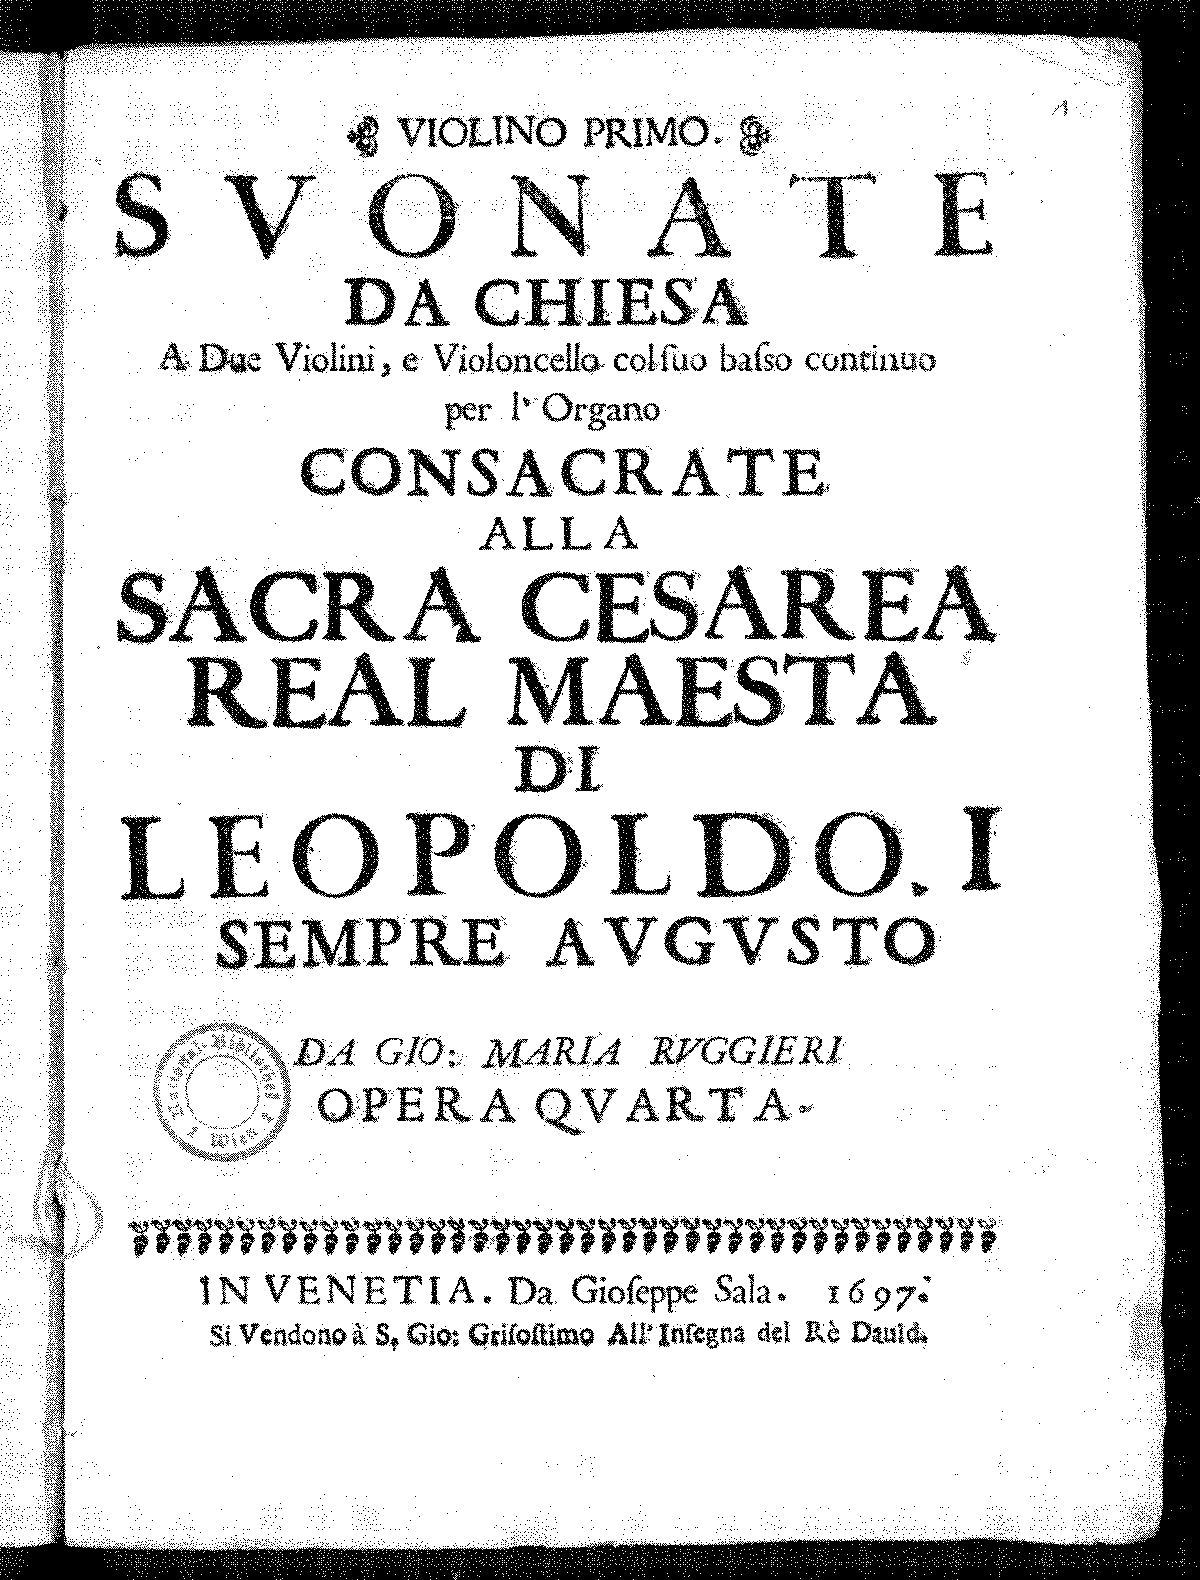 PMLP524510-Ruggieri - Suonate da Chiesa, Op 4 -Violino Primo, colour-.pdf